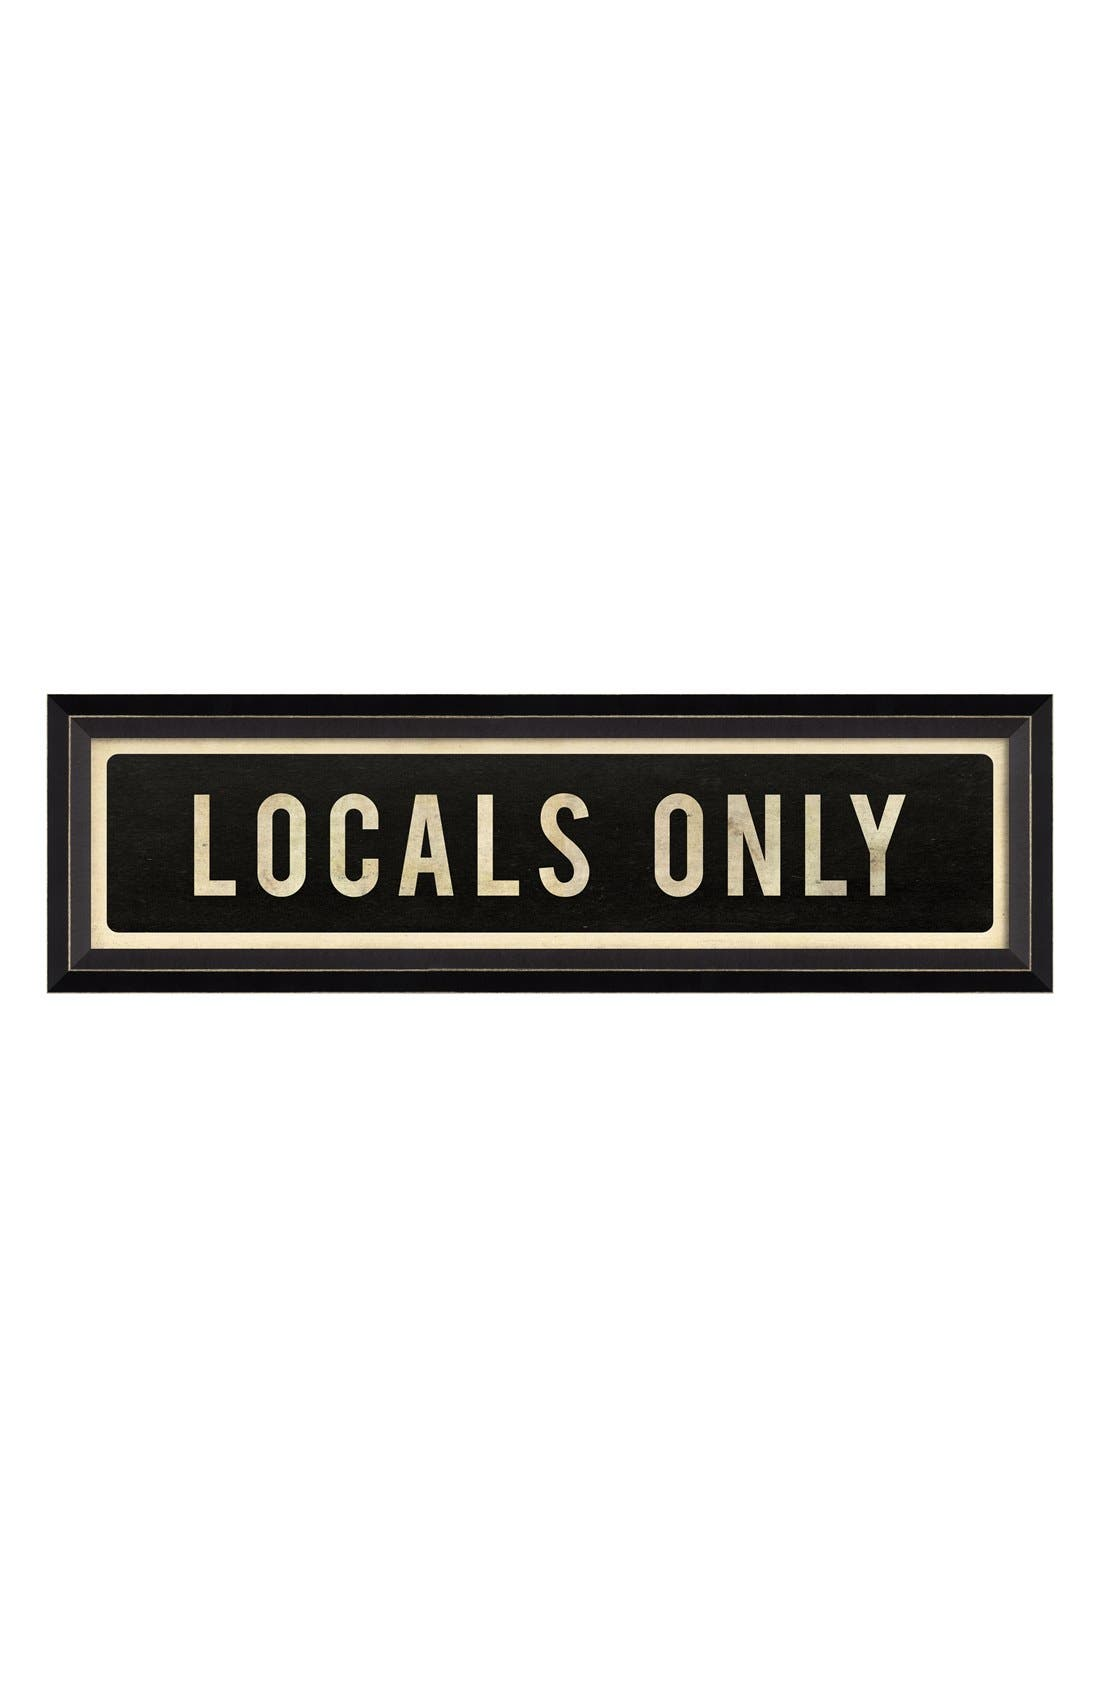 Alternate Image 1 Selected - Spicher and Company 'Locals Only' Vintage Look Street Sign Artwork